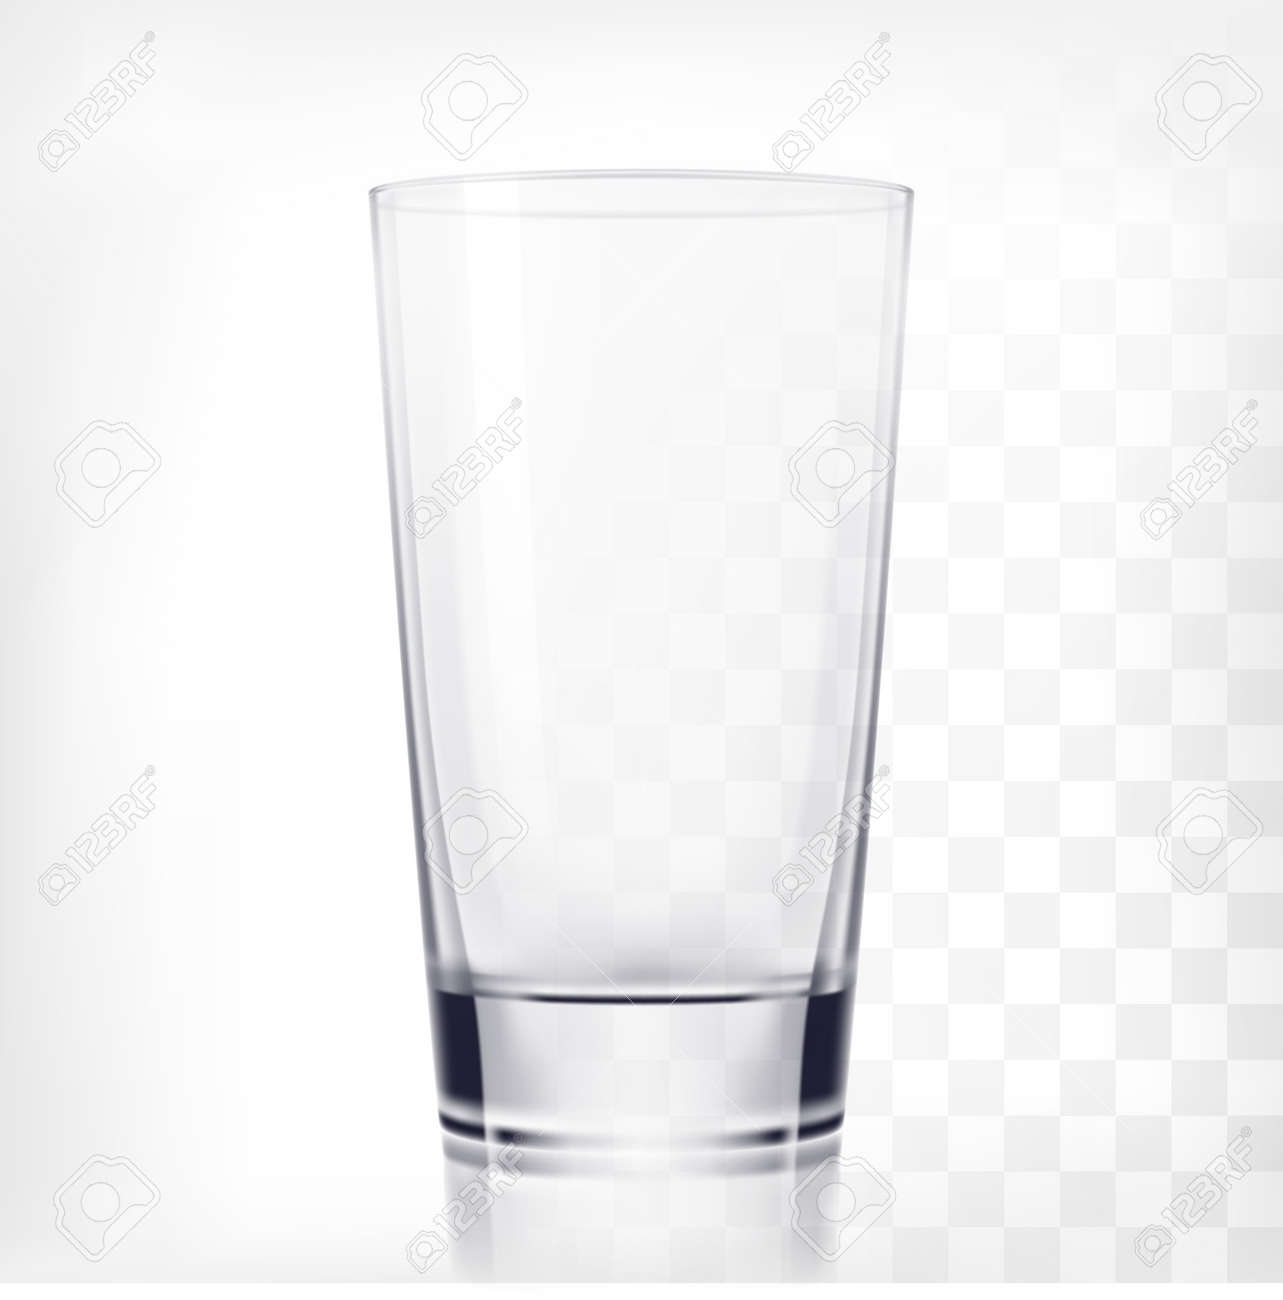 Empty Drinking Glass Cup. Transparent Glass On Transparent Background Stock  Vector   46700263